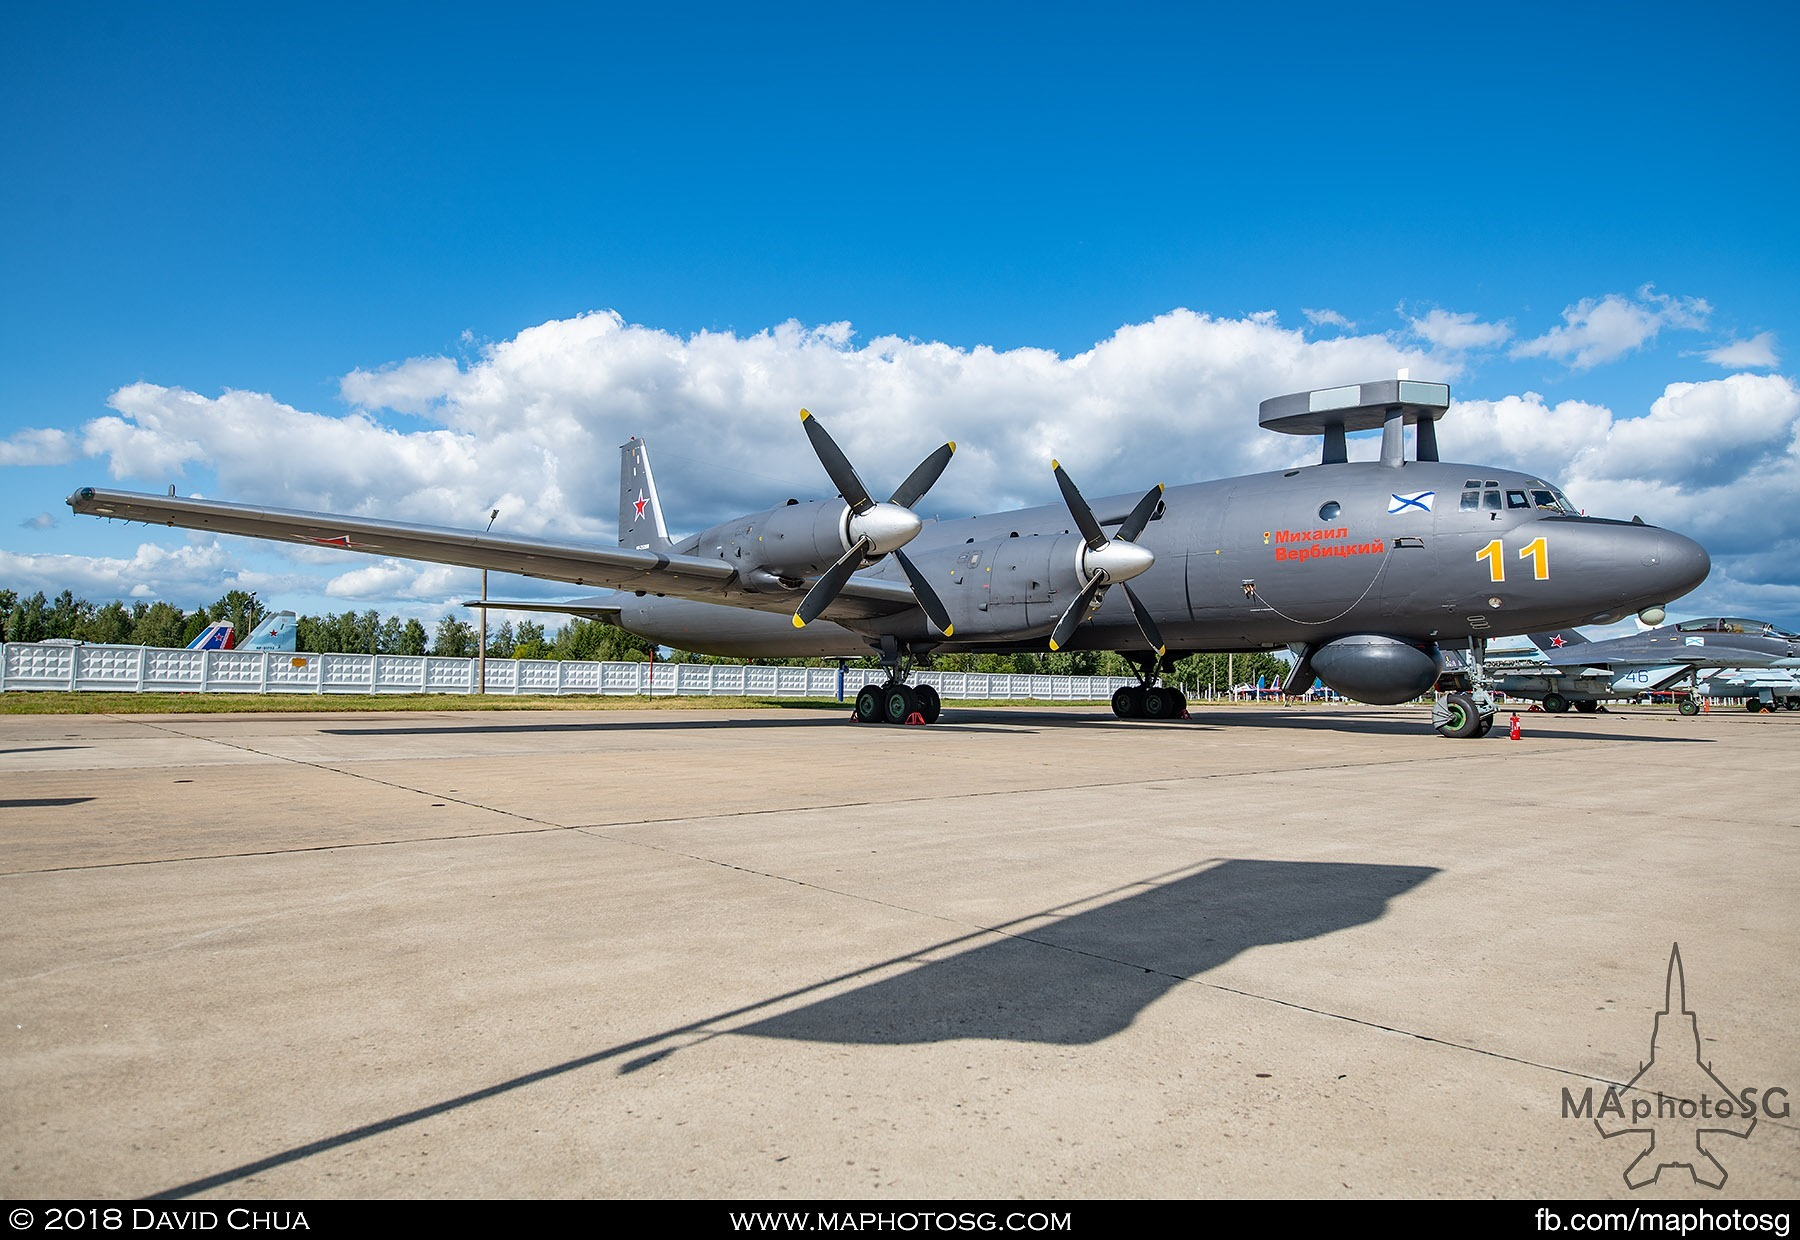 23. Ilysushin Il-38n Anti Submarine aircraft